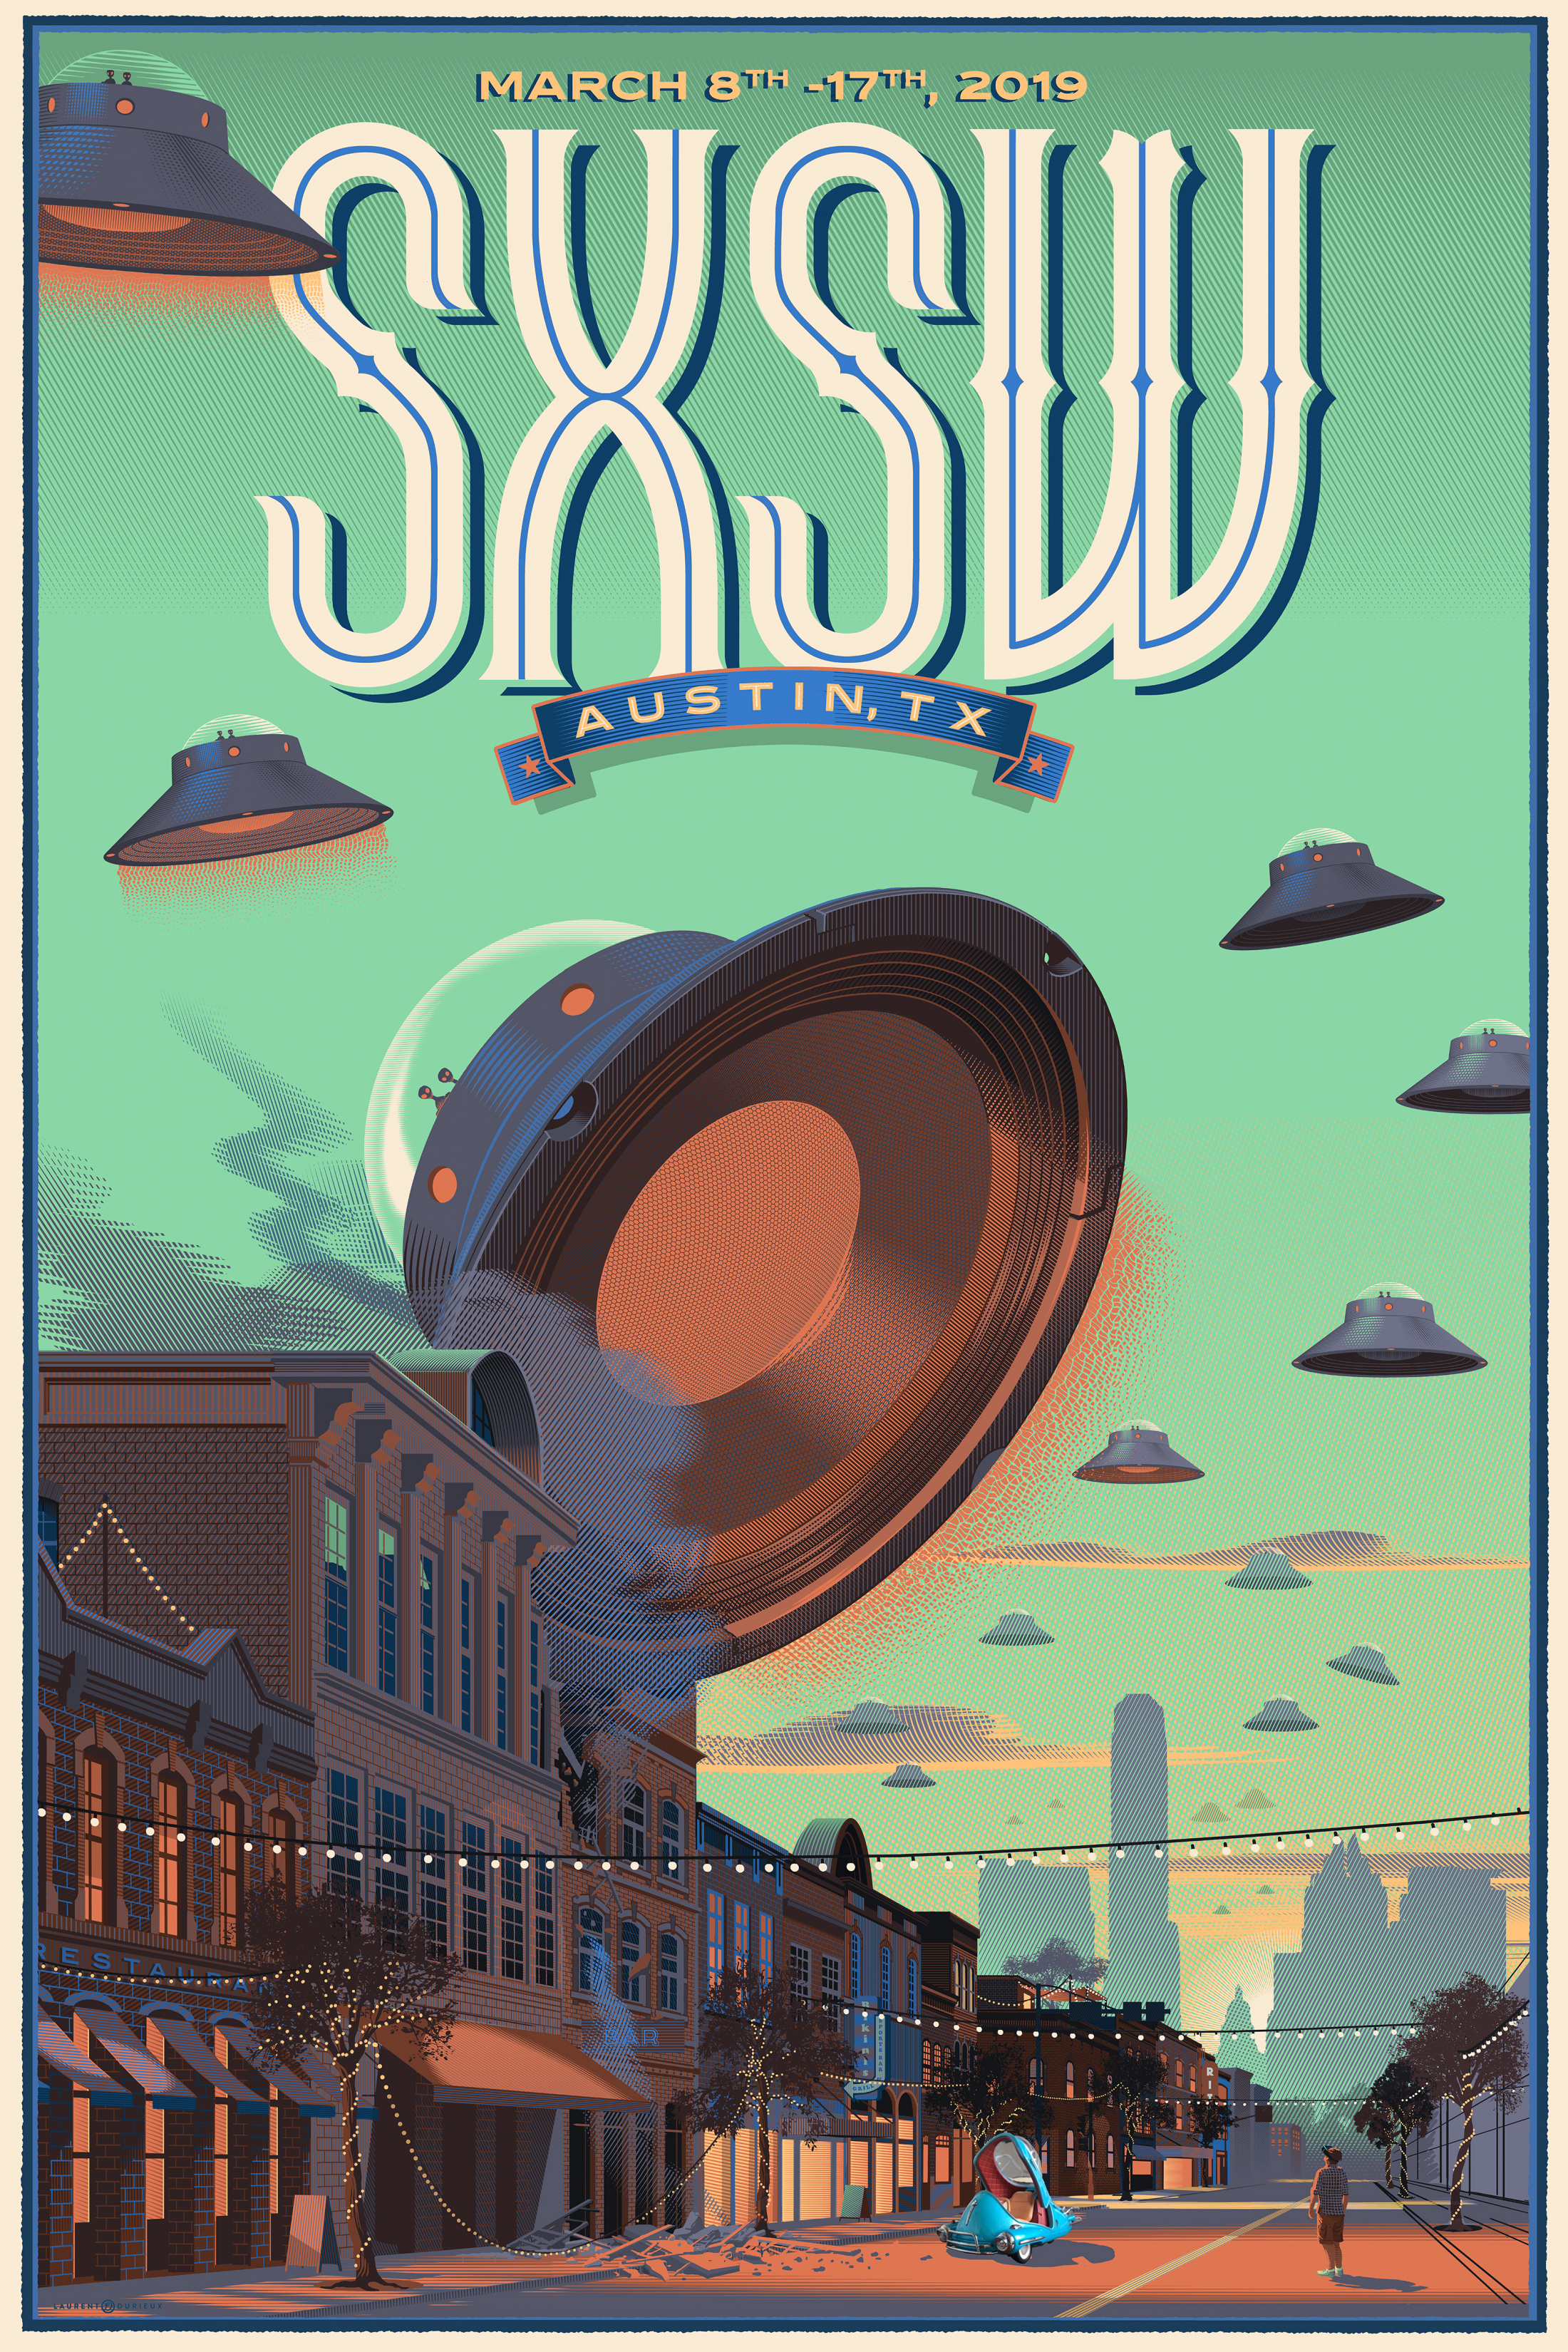 Thumbnail for  2019 SOUTH BY SOUTHWEST OFFICIAL POSTER